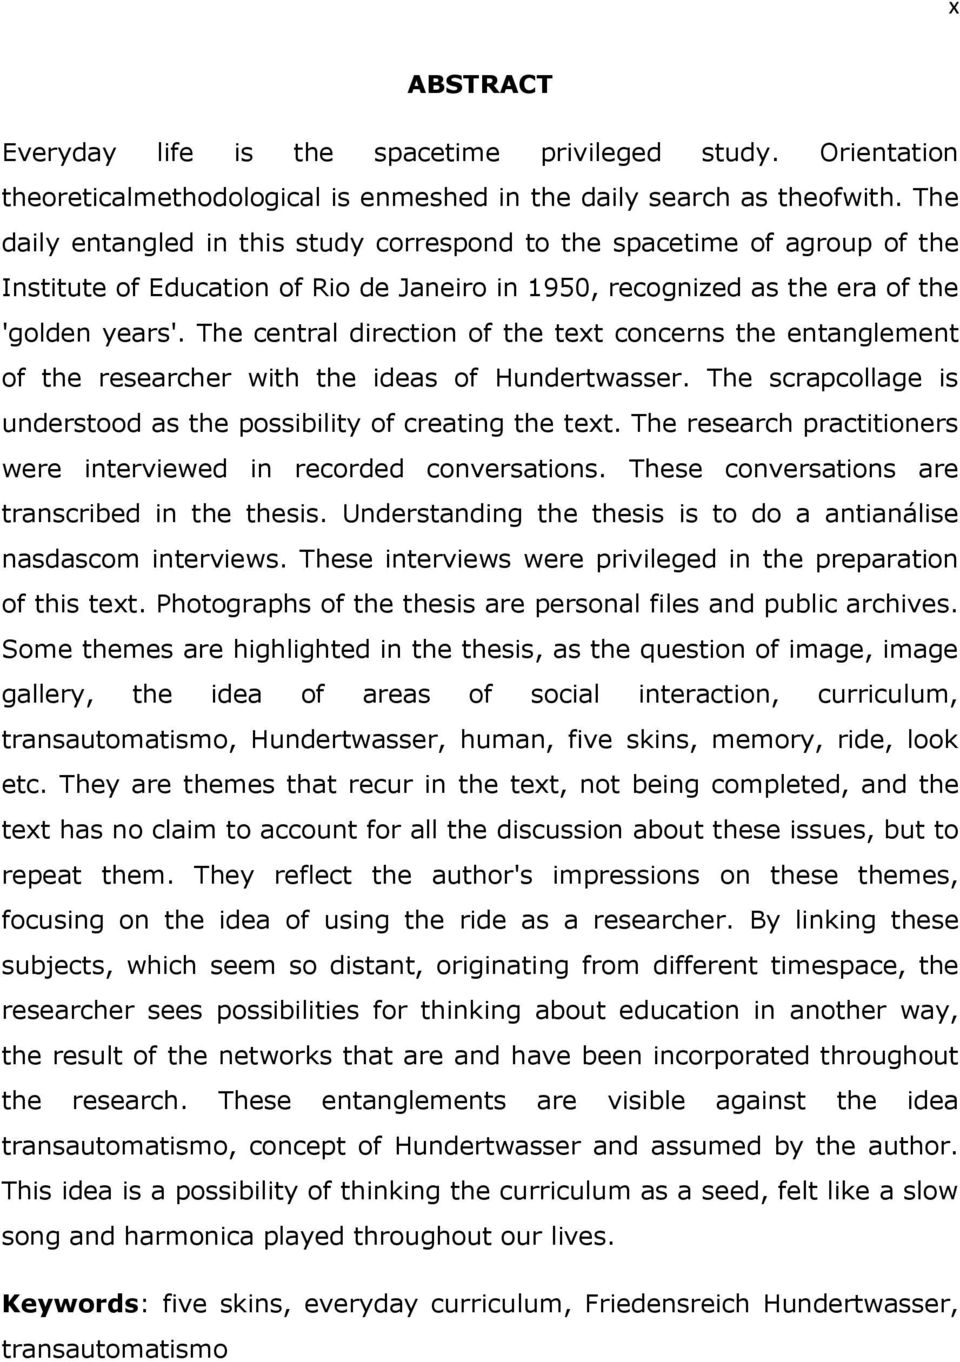 The central direction of the text concerns the entanglement of the researcher with the ideas of Hundertwasser. The scrapcollage is understood as the possibility of creating the text.